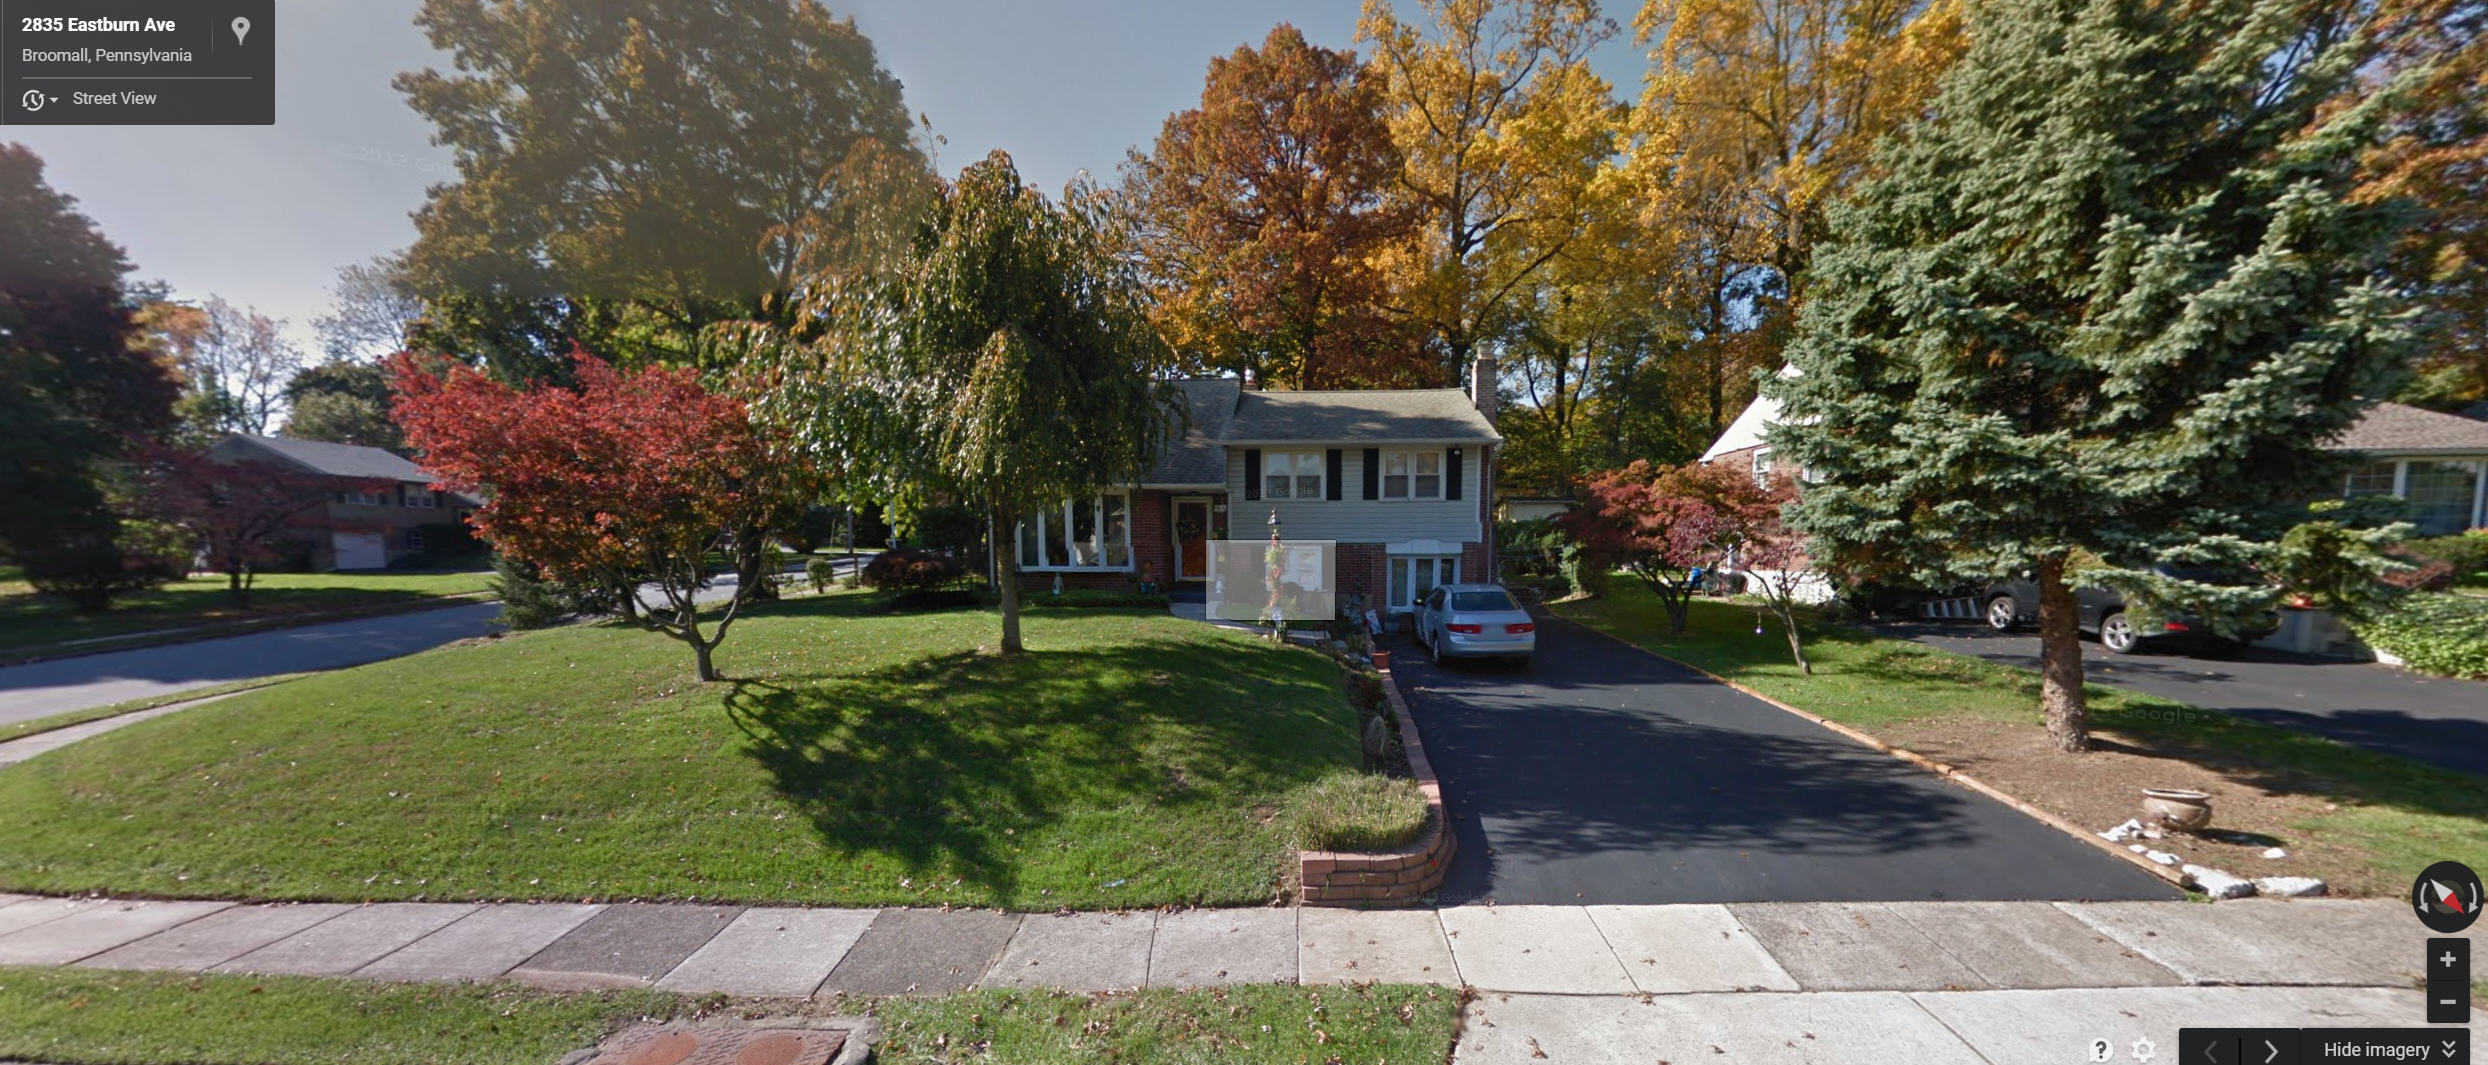 our house in Broomall.jpg